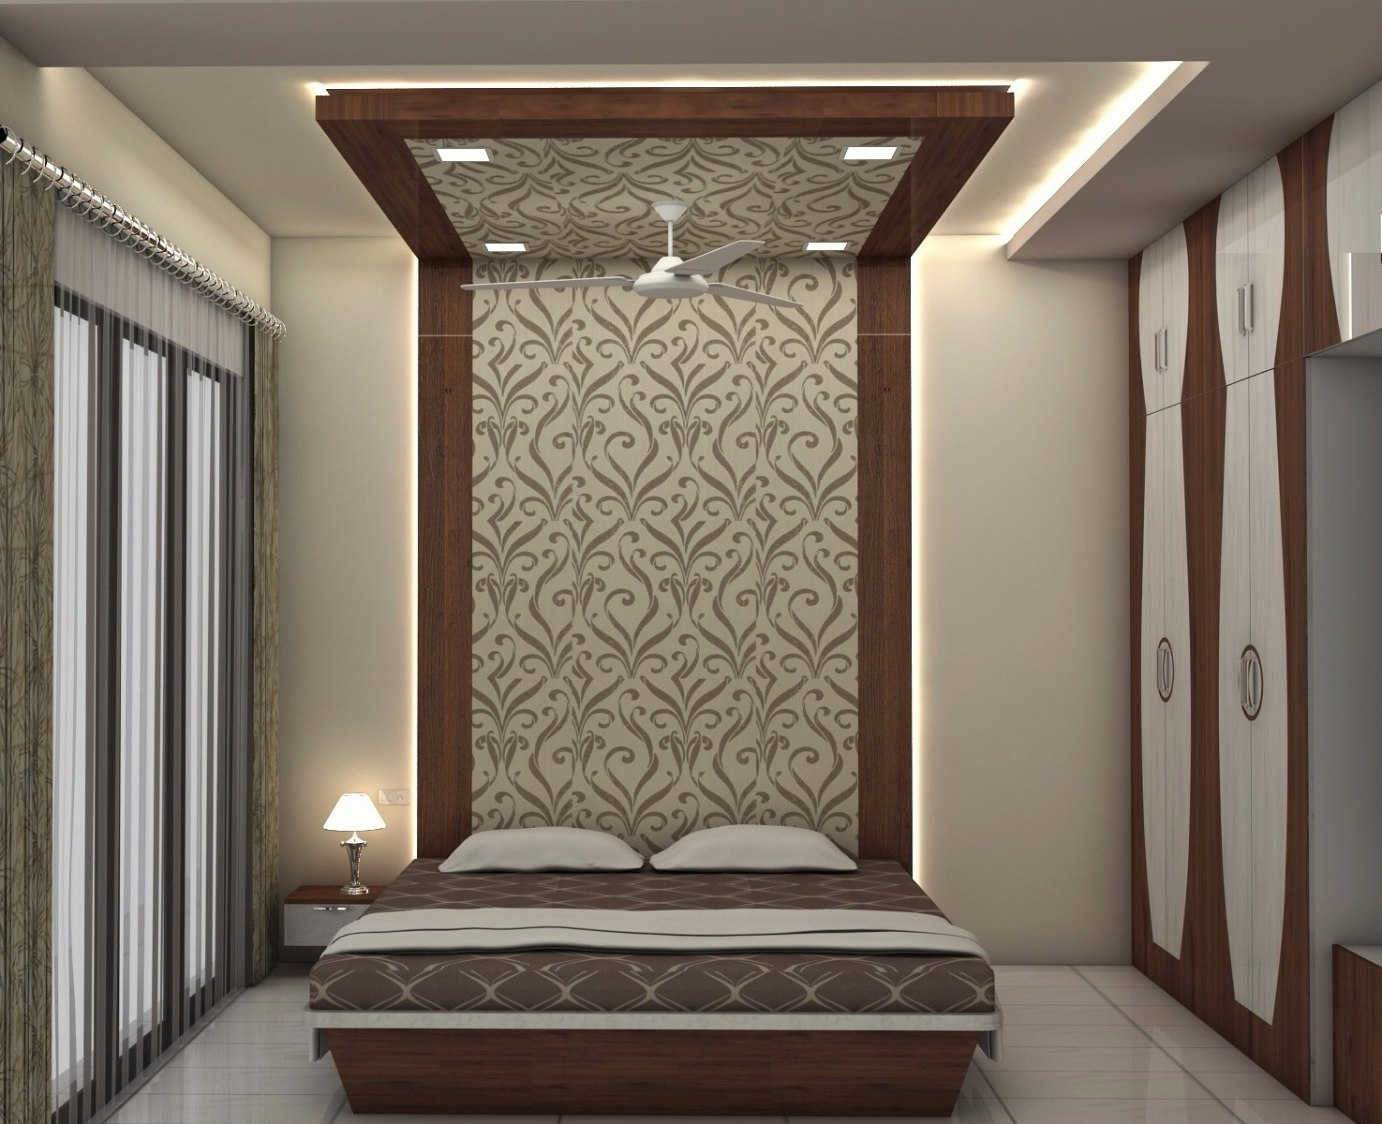 Bedroom with wallpaper by Talha Naim Momin Modern | Interior Design Photos & Ideas